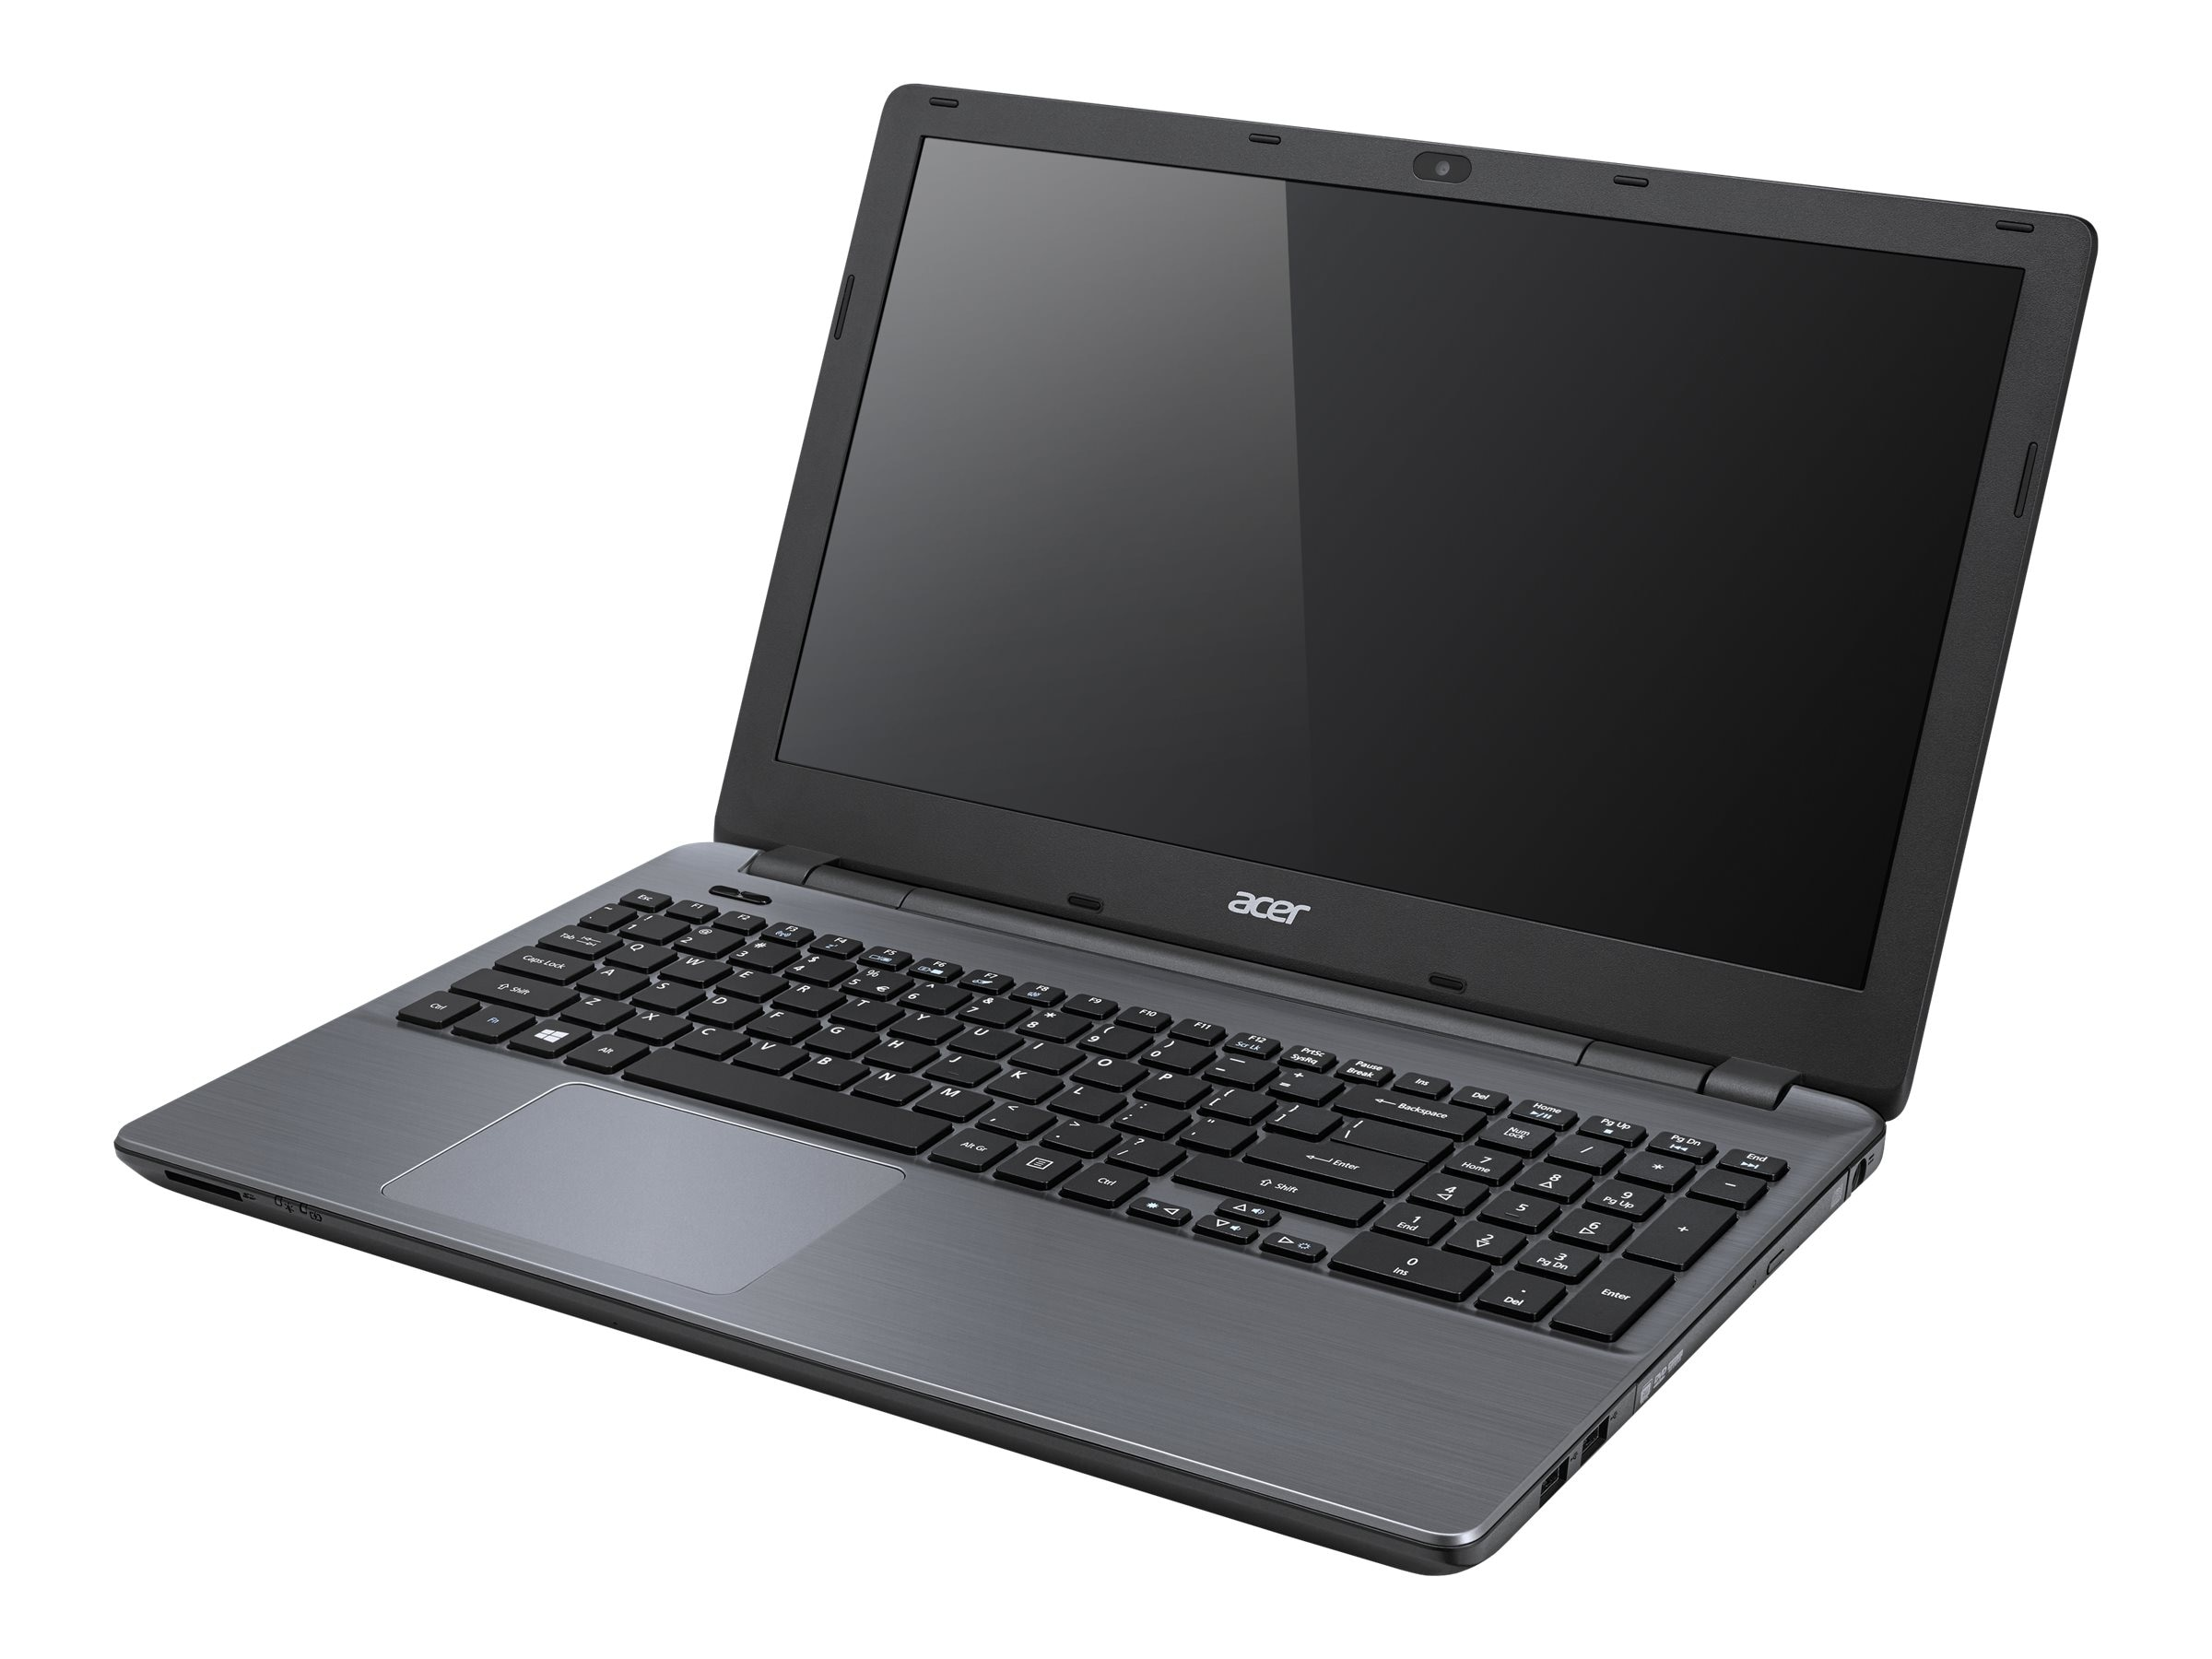 Acer Aspire E5-531-C01E : 1.4GHz Celeron 15.6in display, NX.MLVAA.001, 17733711, Notebooks